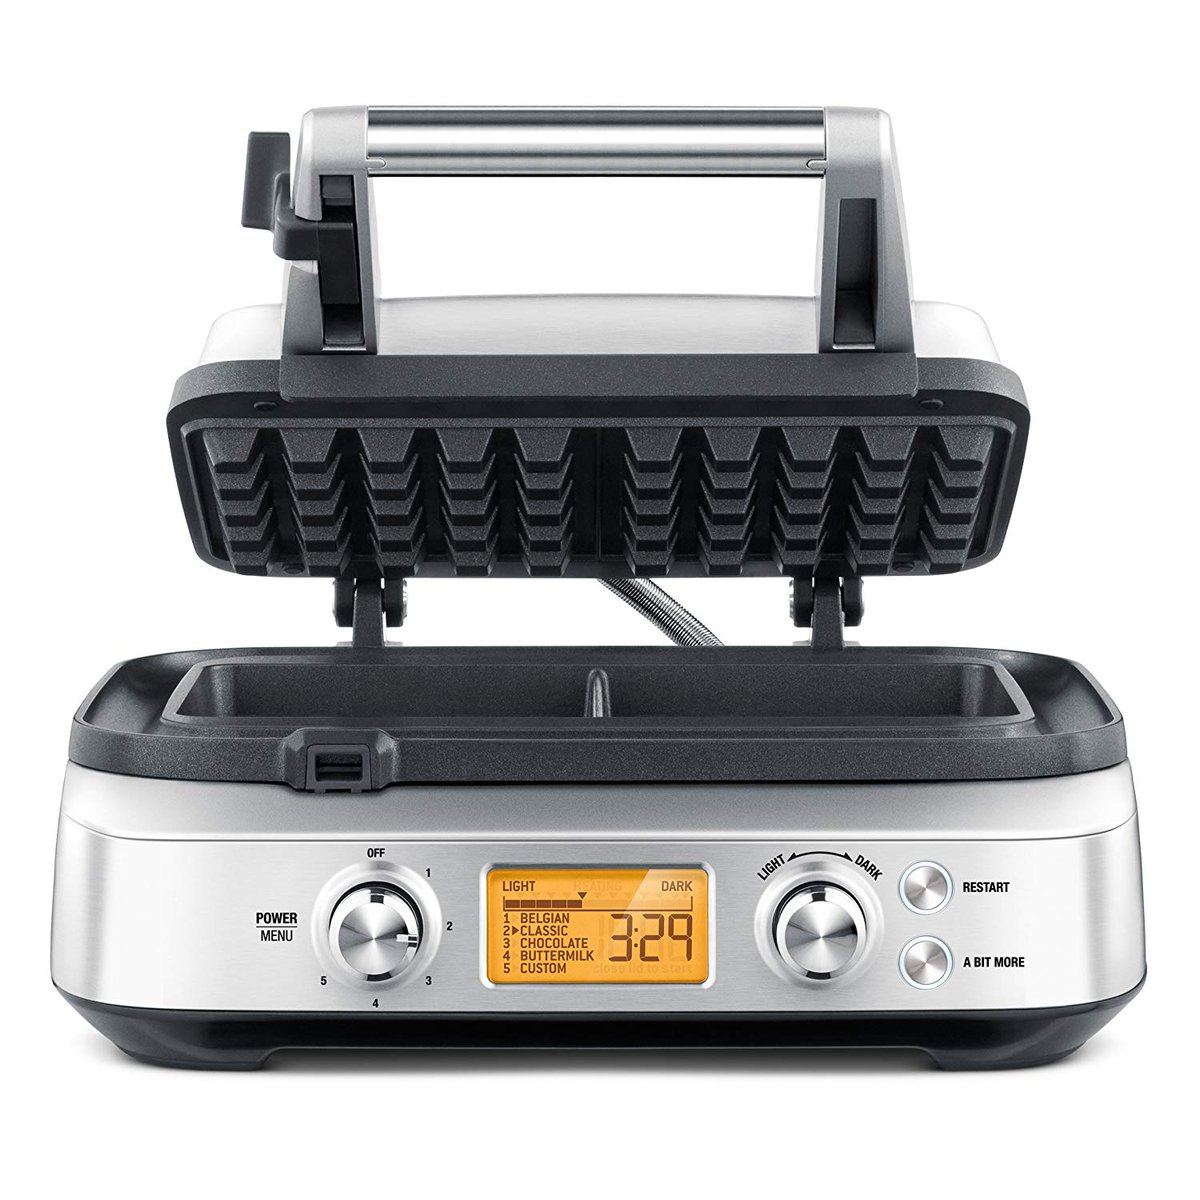 The Smart Pro 2 Slice Waffle Maker Get it here 👉https://t.co/RP7TVhQLU1 affiliate link Buy at $224:95 #culinarytool #brevillesmartwaffle #smartwaffle #bestwaffle #brevillewafflemaker #bestwafflemakers #waffleiron #smallappliances #homeandkitchen #kitchenanddining https://t.co/r9obgv1dHP